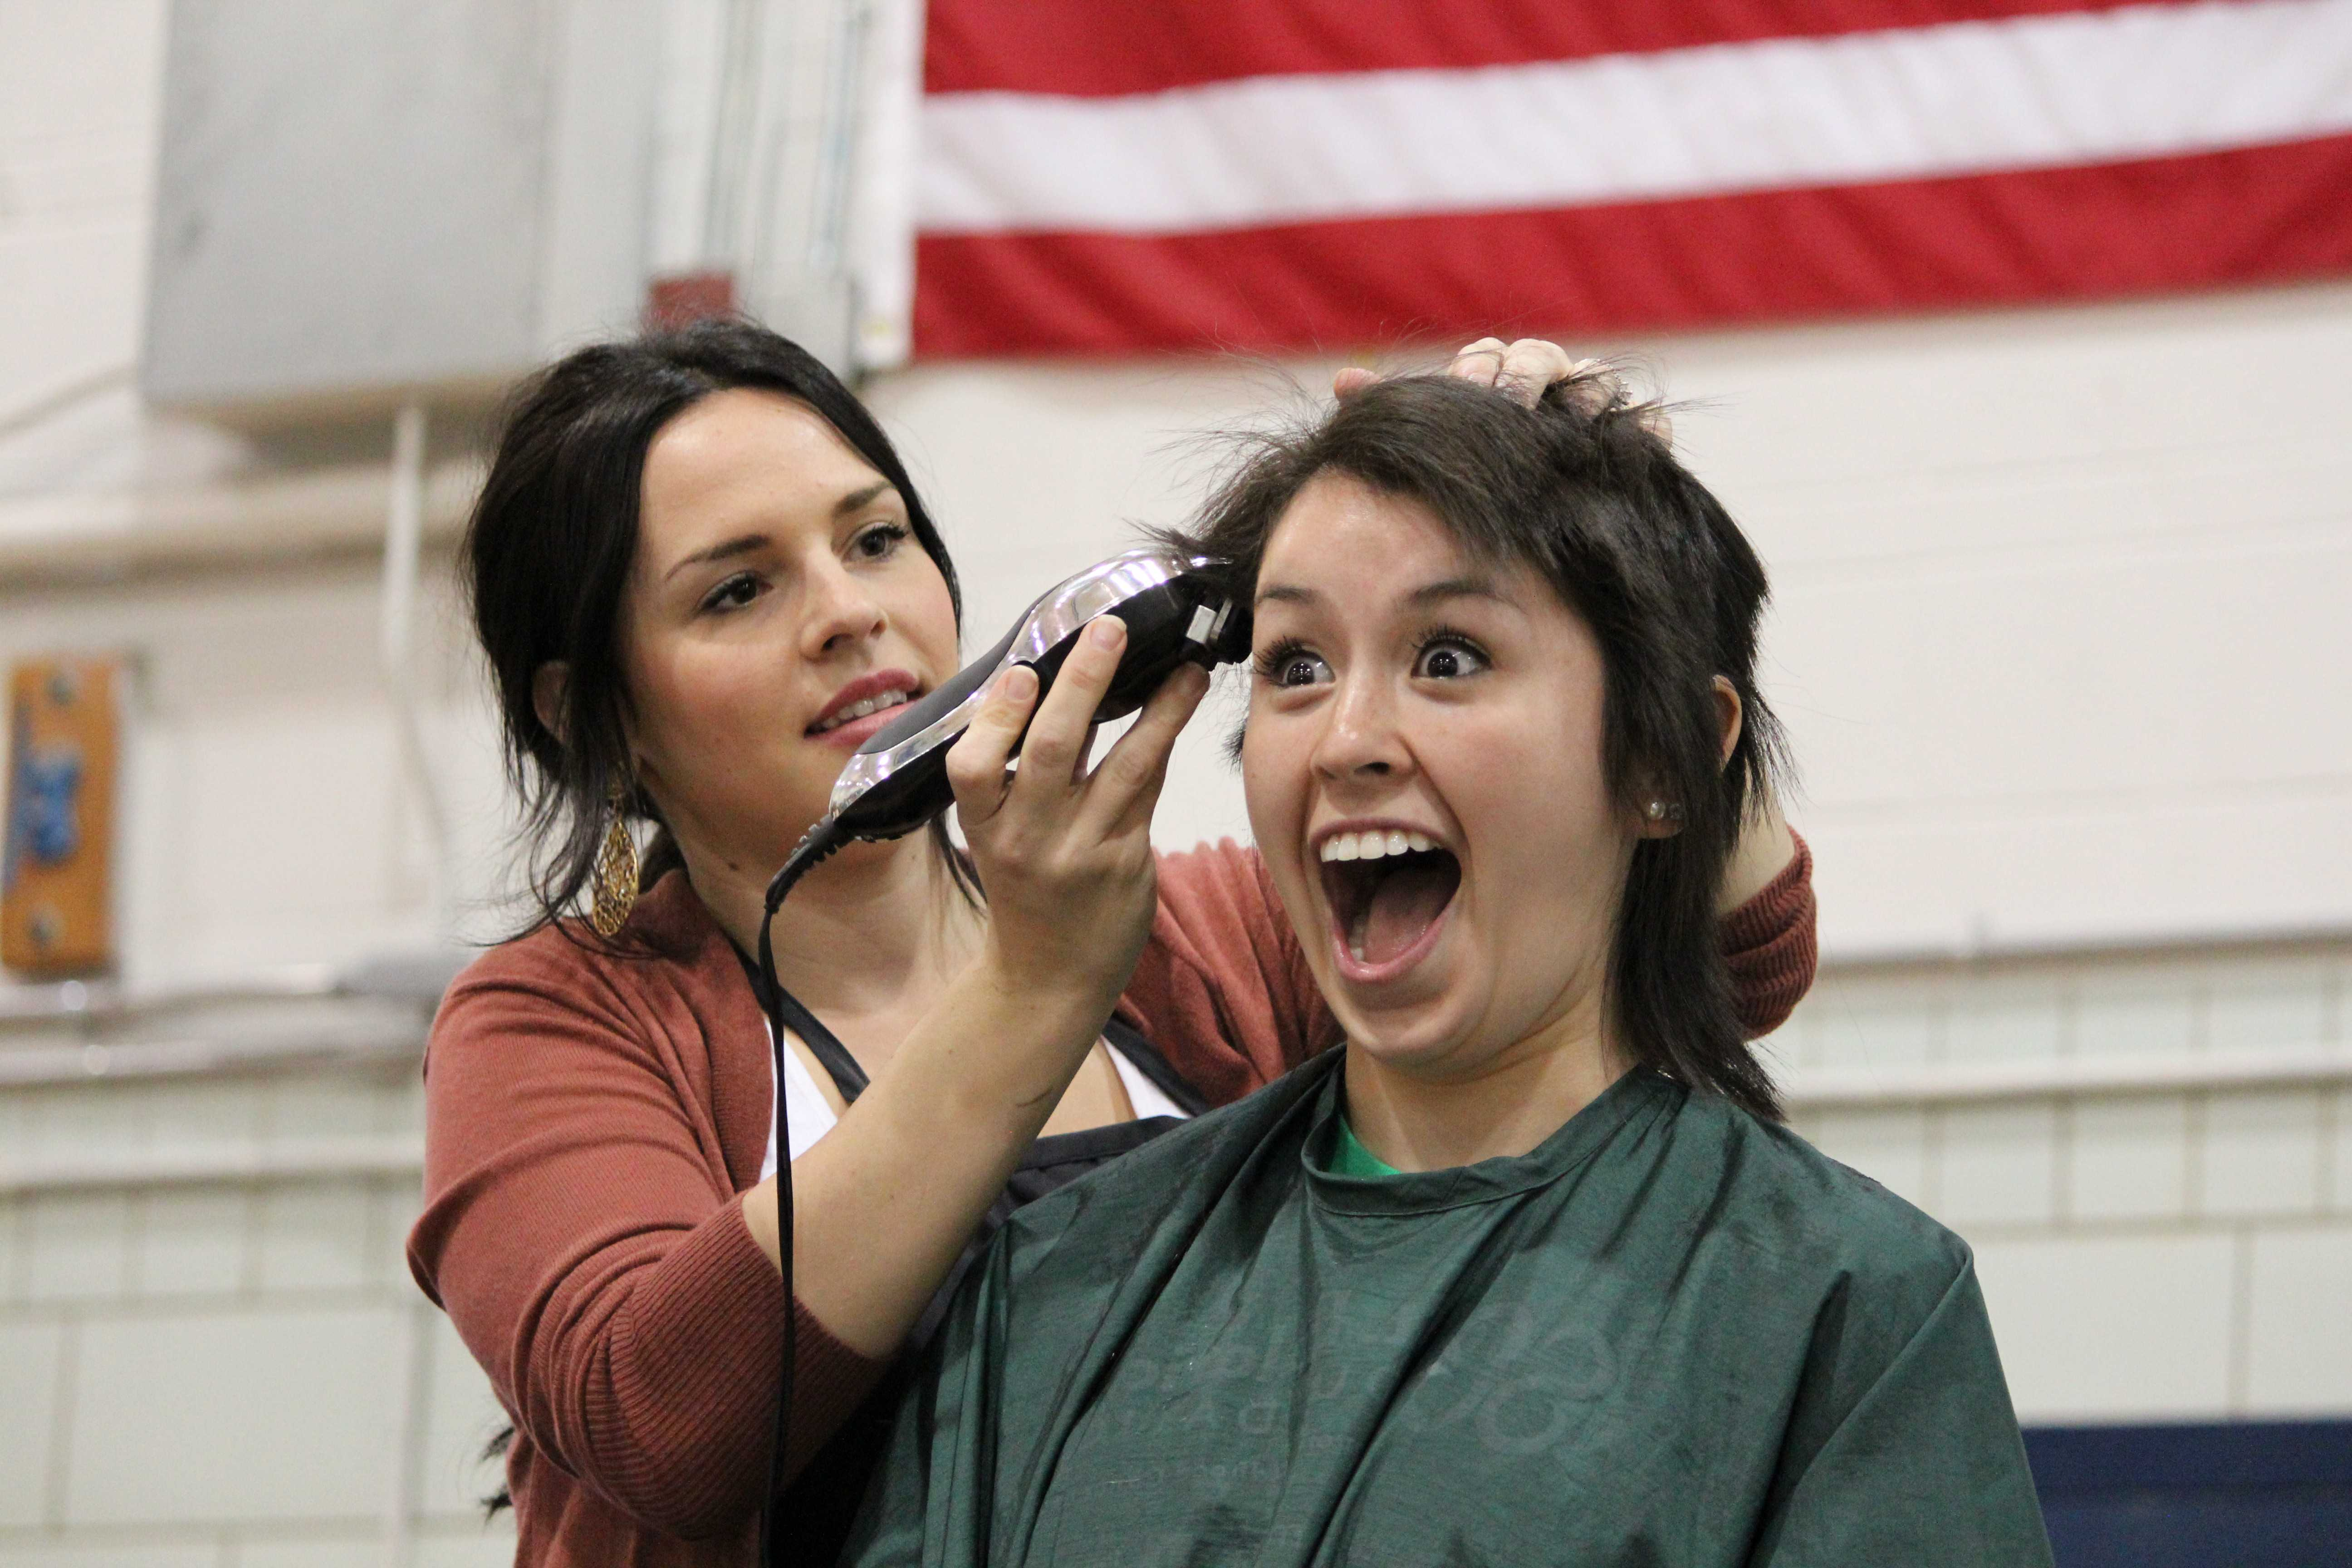 Sophomore Nathalie Solorio getting her hair buzzed off at the St. Baldrick's event for childhood cancer research